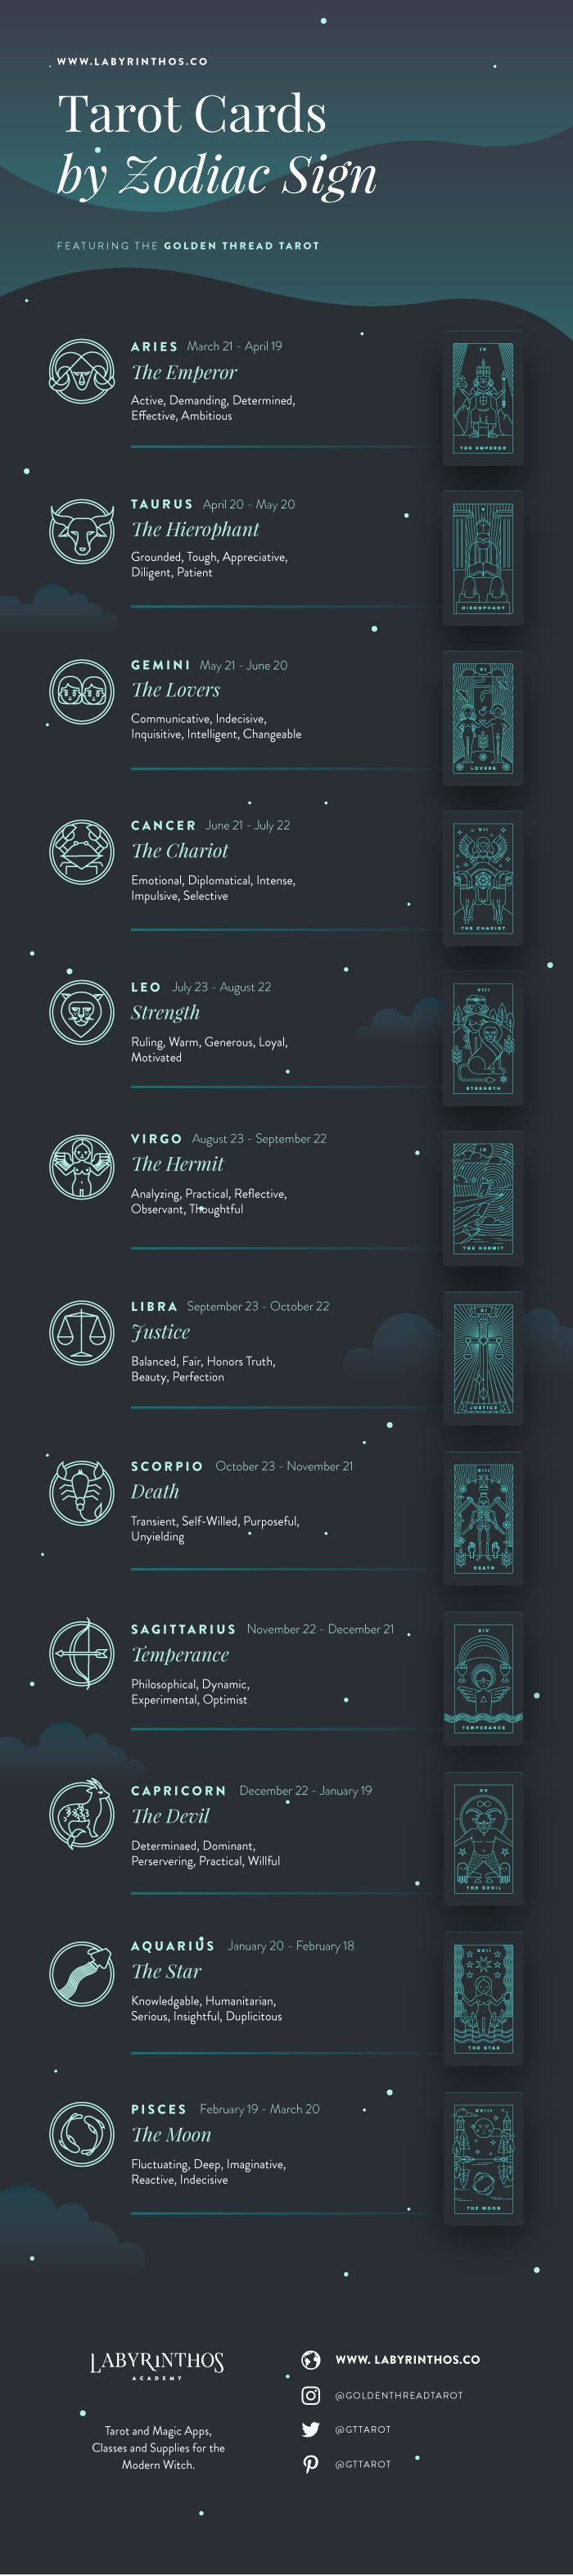 Tarot and Astrology Correspondences - tarot cards by zodiac sign. Infographics about witchcraft, wicca, mysticism, magick, rituals, paganism, herbalism, spells, and the occult, witches, aries, taurus, gemini, cancer, leo, virgo, libra, scorpio, sagittarius, capricorn, aquarius, pisces. #vitaminB #F4F #FF #vitaminC #animals